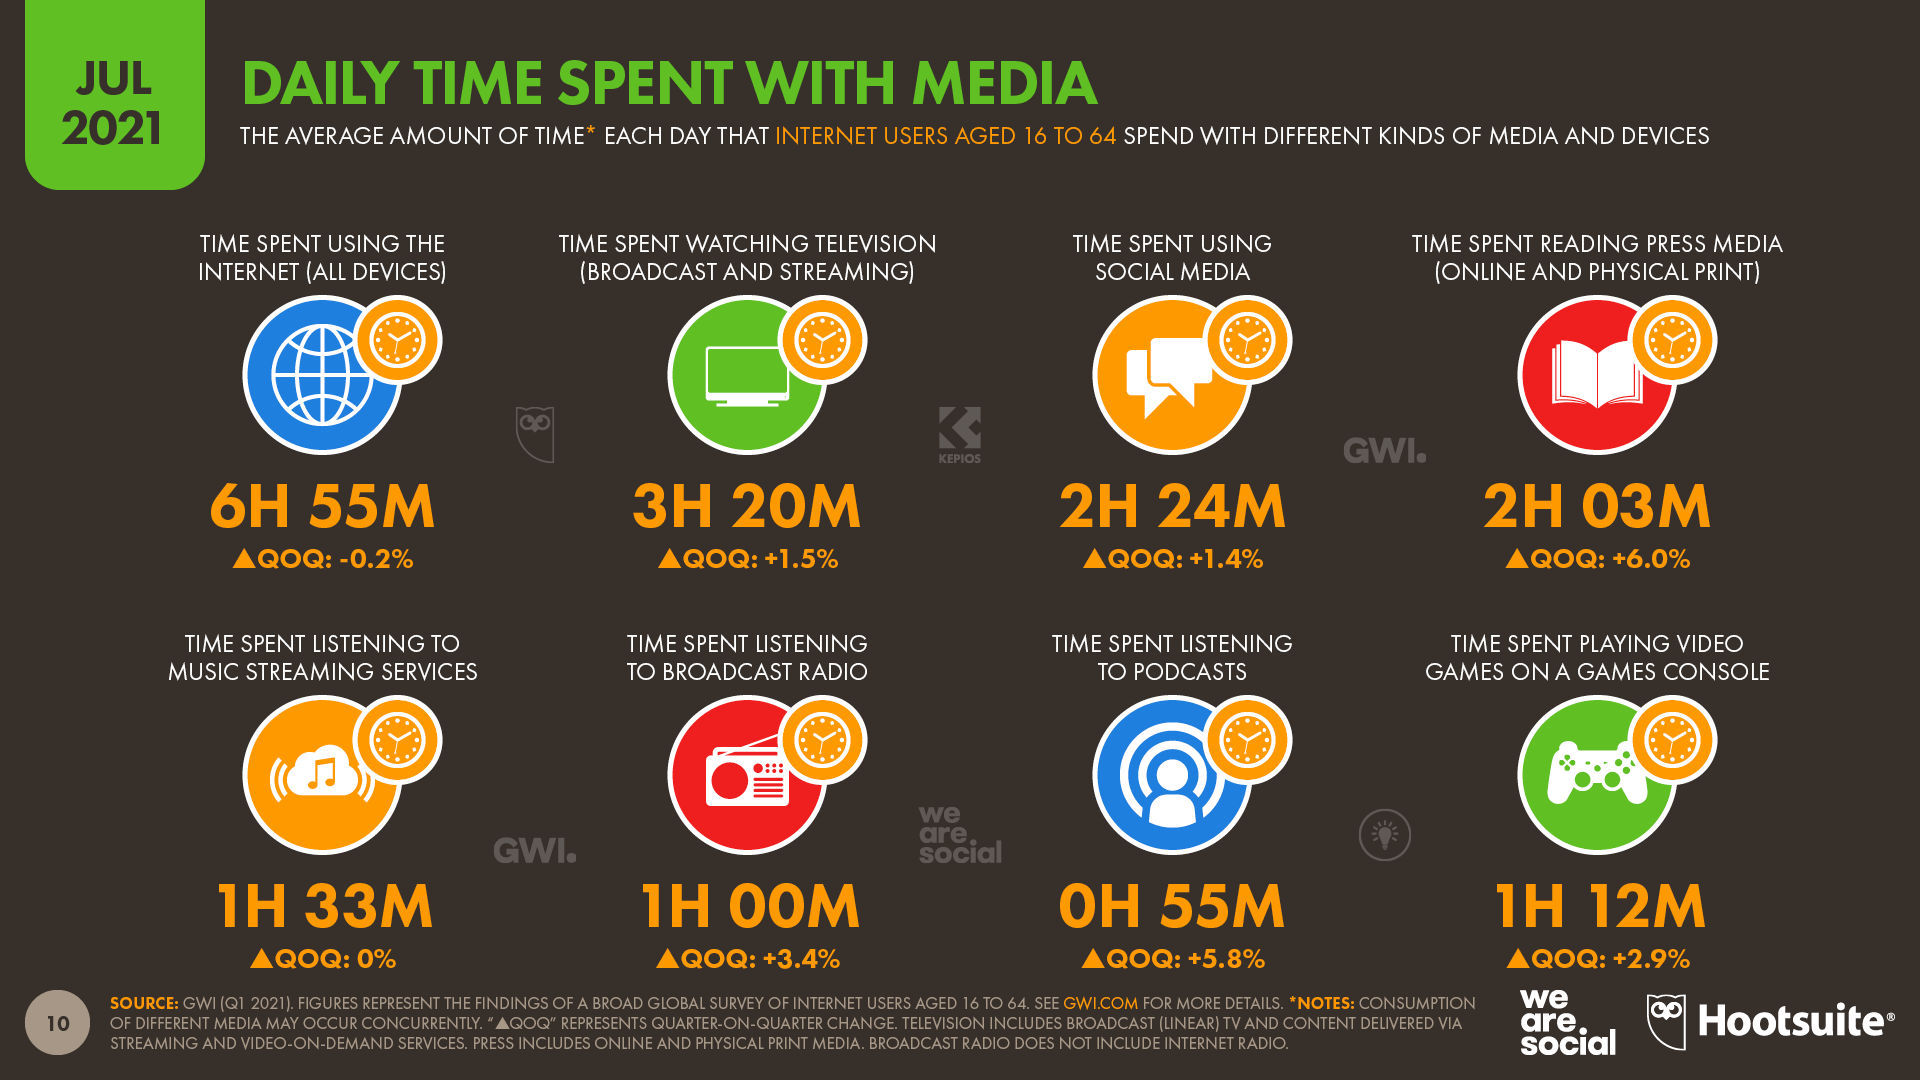 Daily Time Spent with Different Kinds of Media July 2021 DataReportal